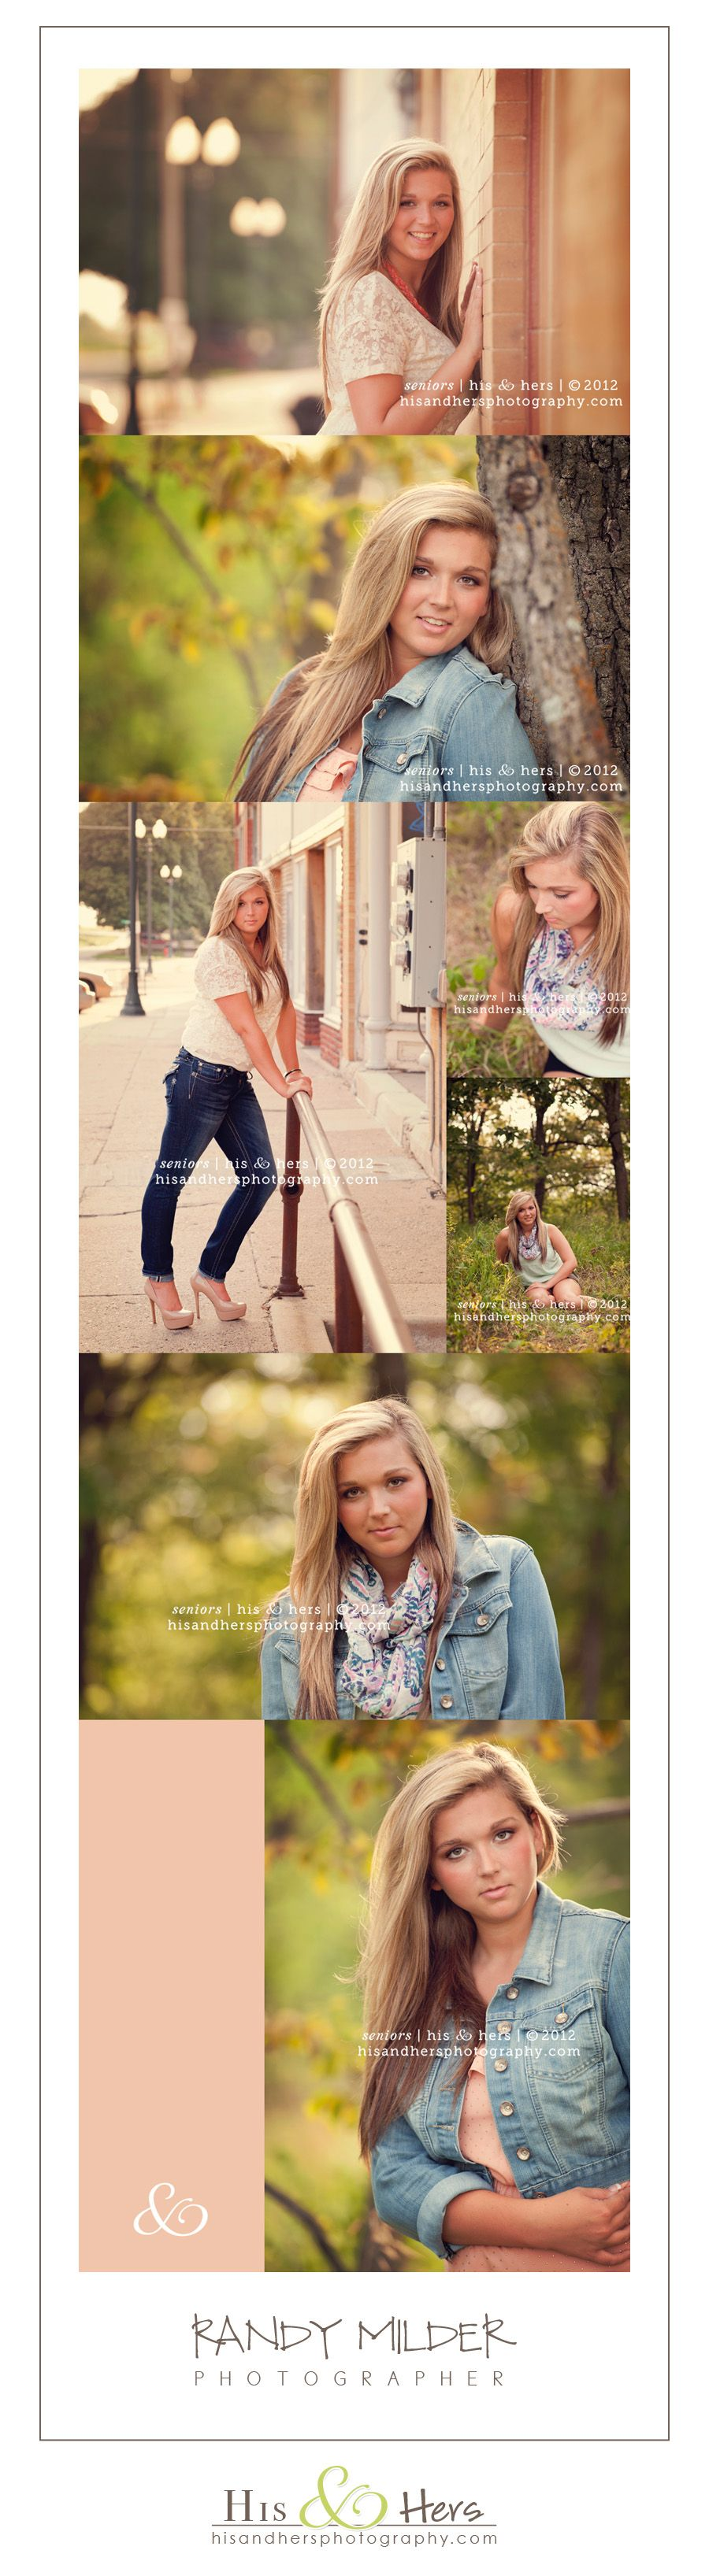 des moines high school senior portraits photographer, iowa senior portraits photographer, iowa senior pictures photographer